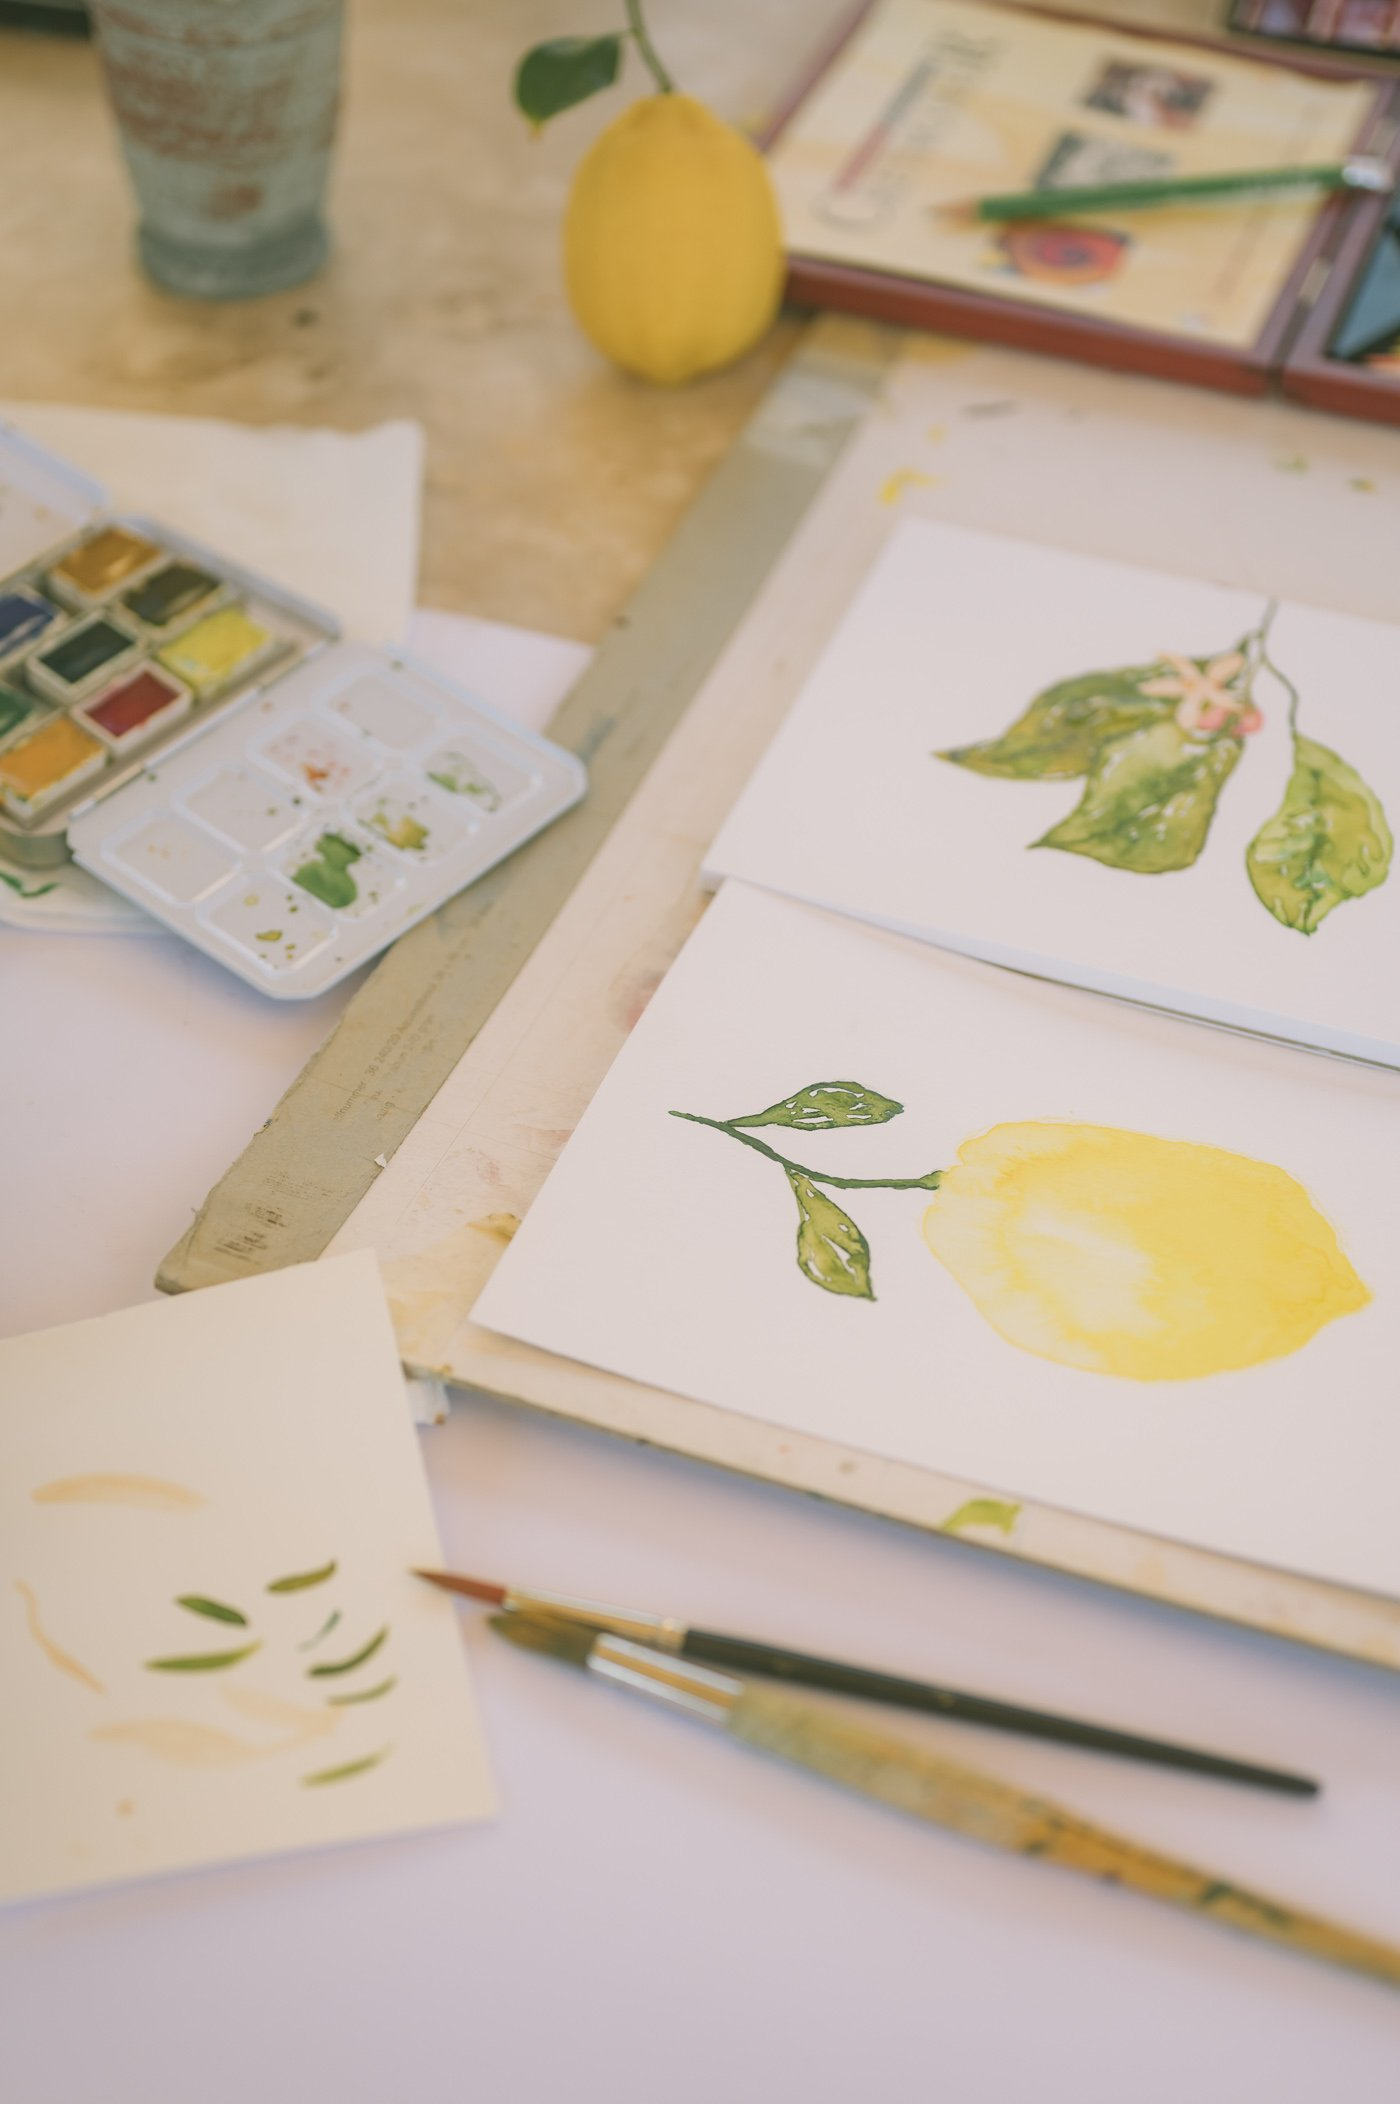 Watercolor class in Tuscany